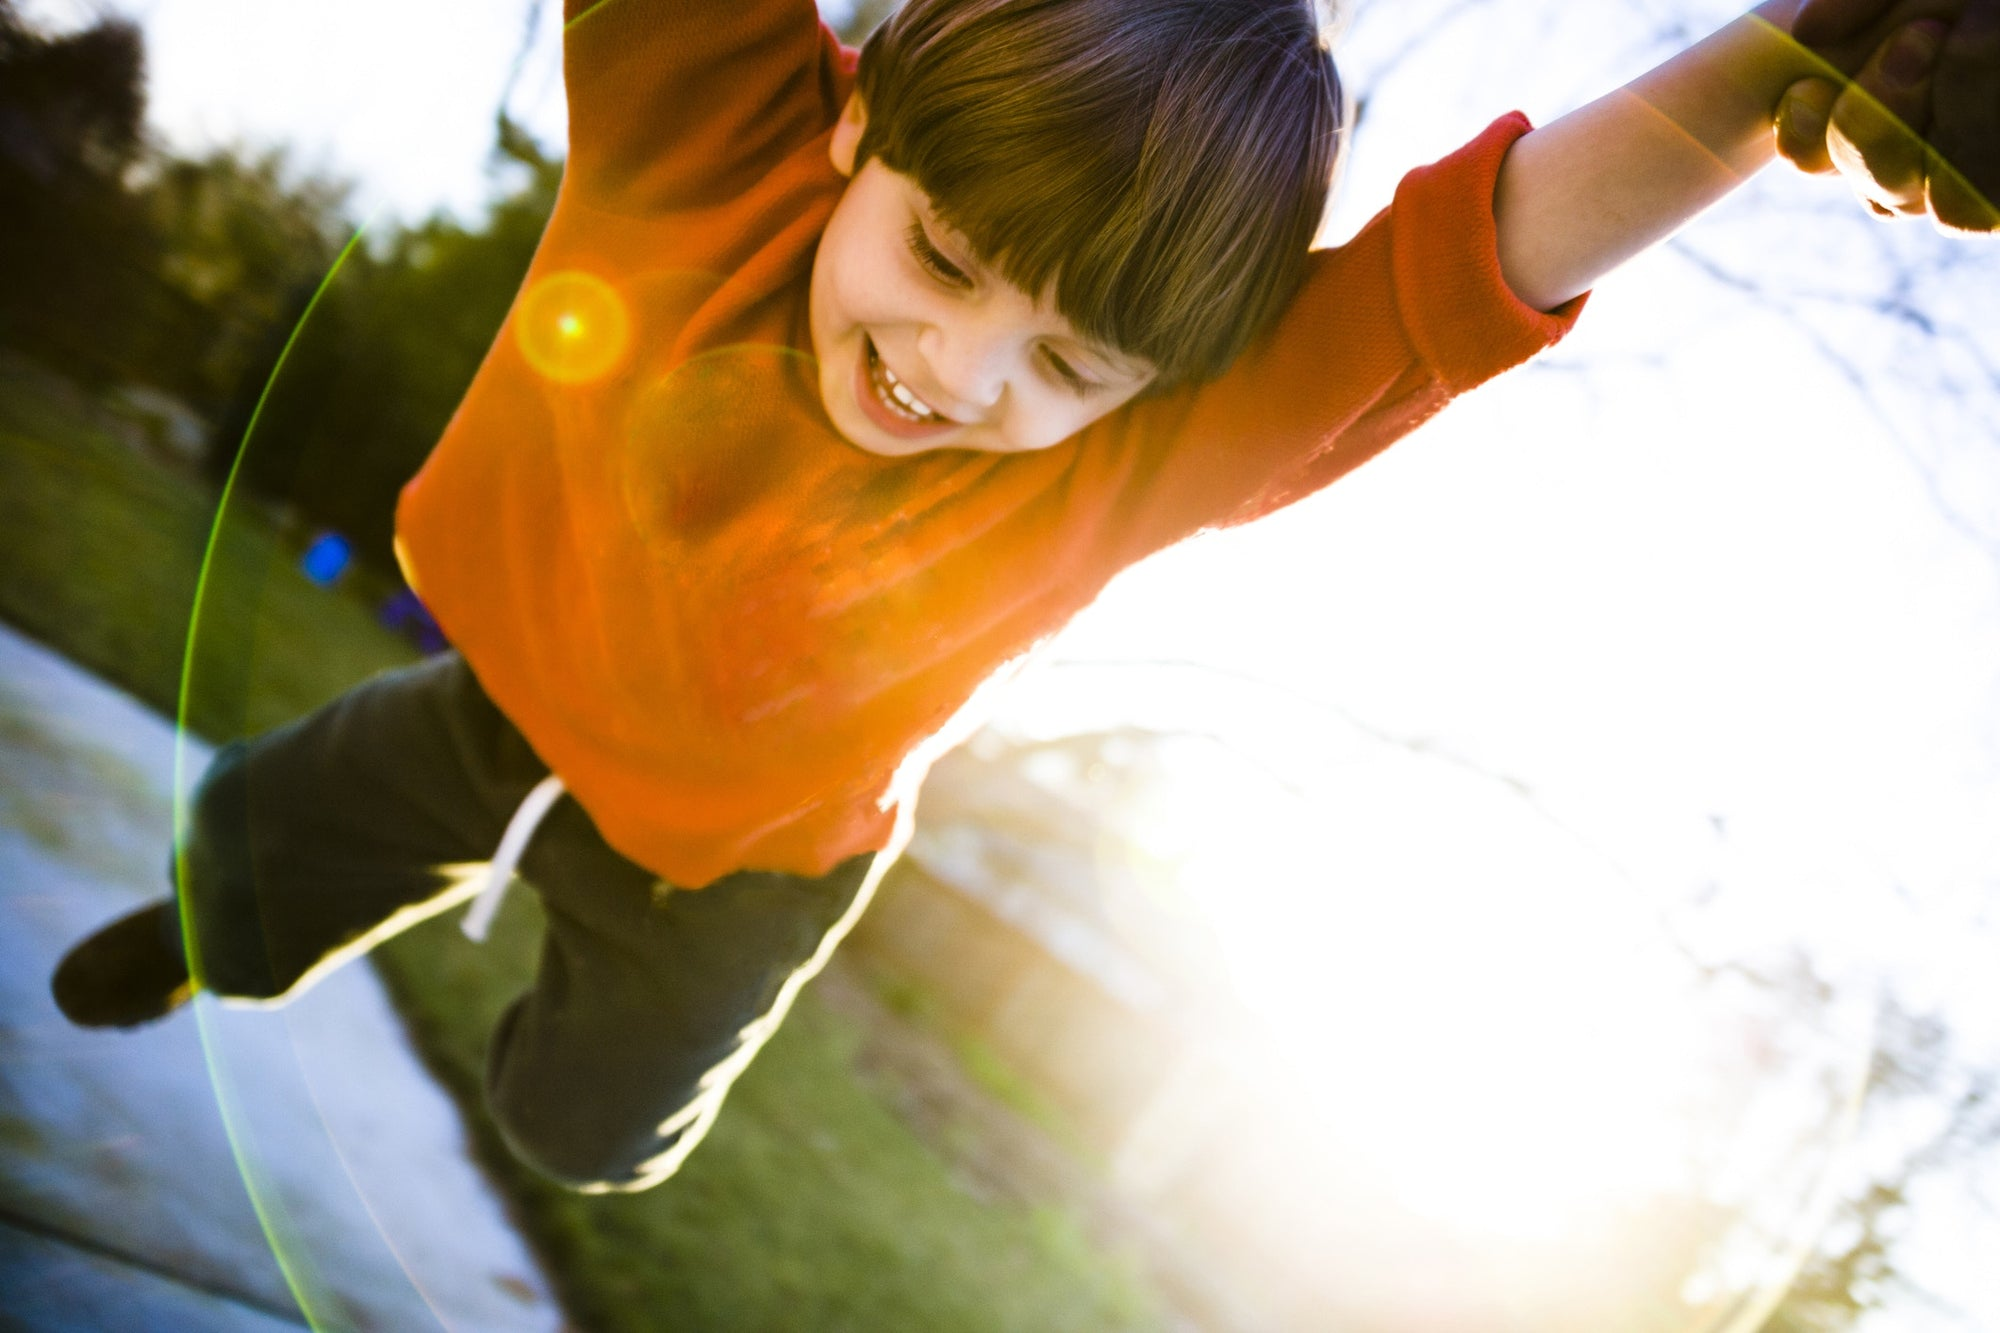 young cheerful boy in orange sweatshirt palying in playground